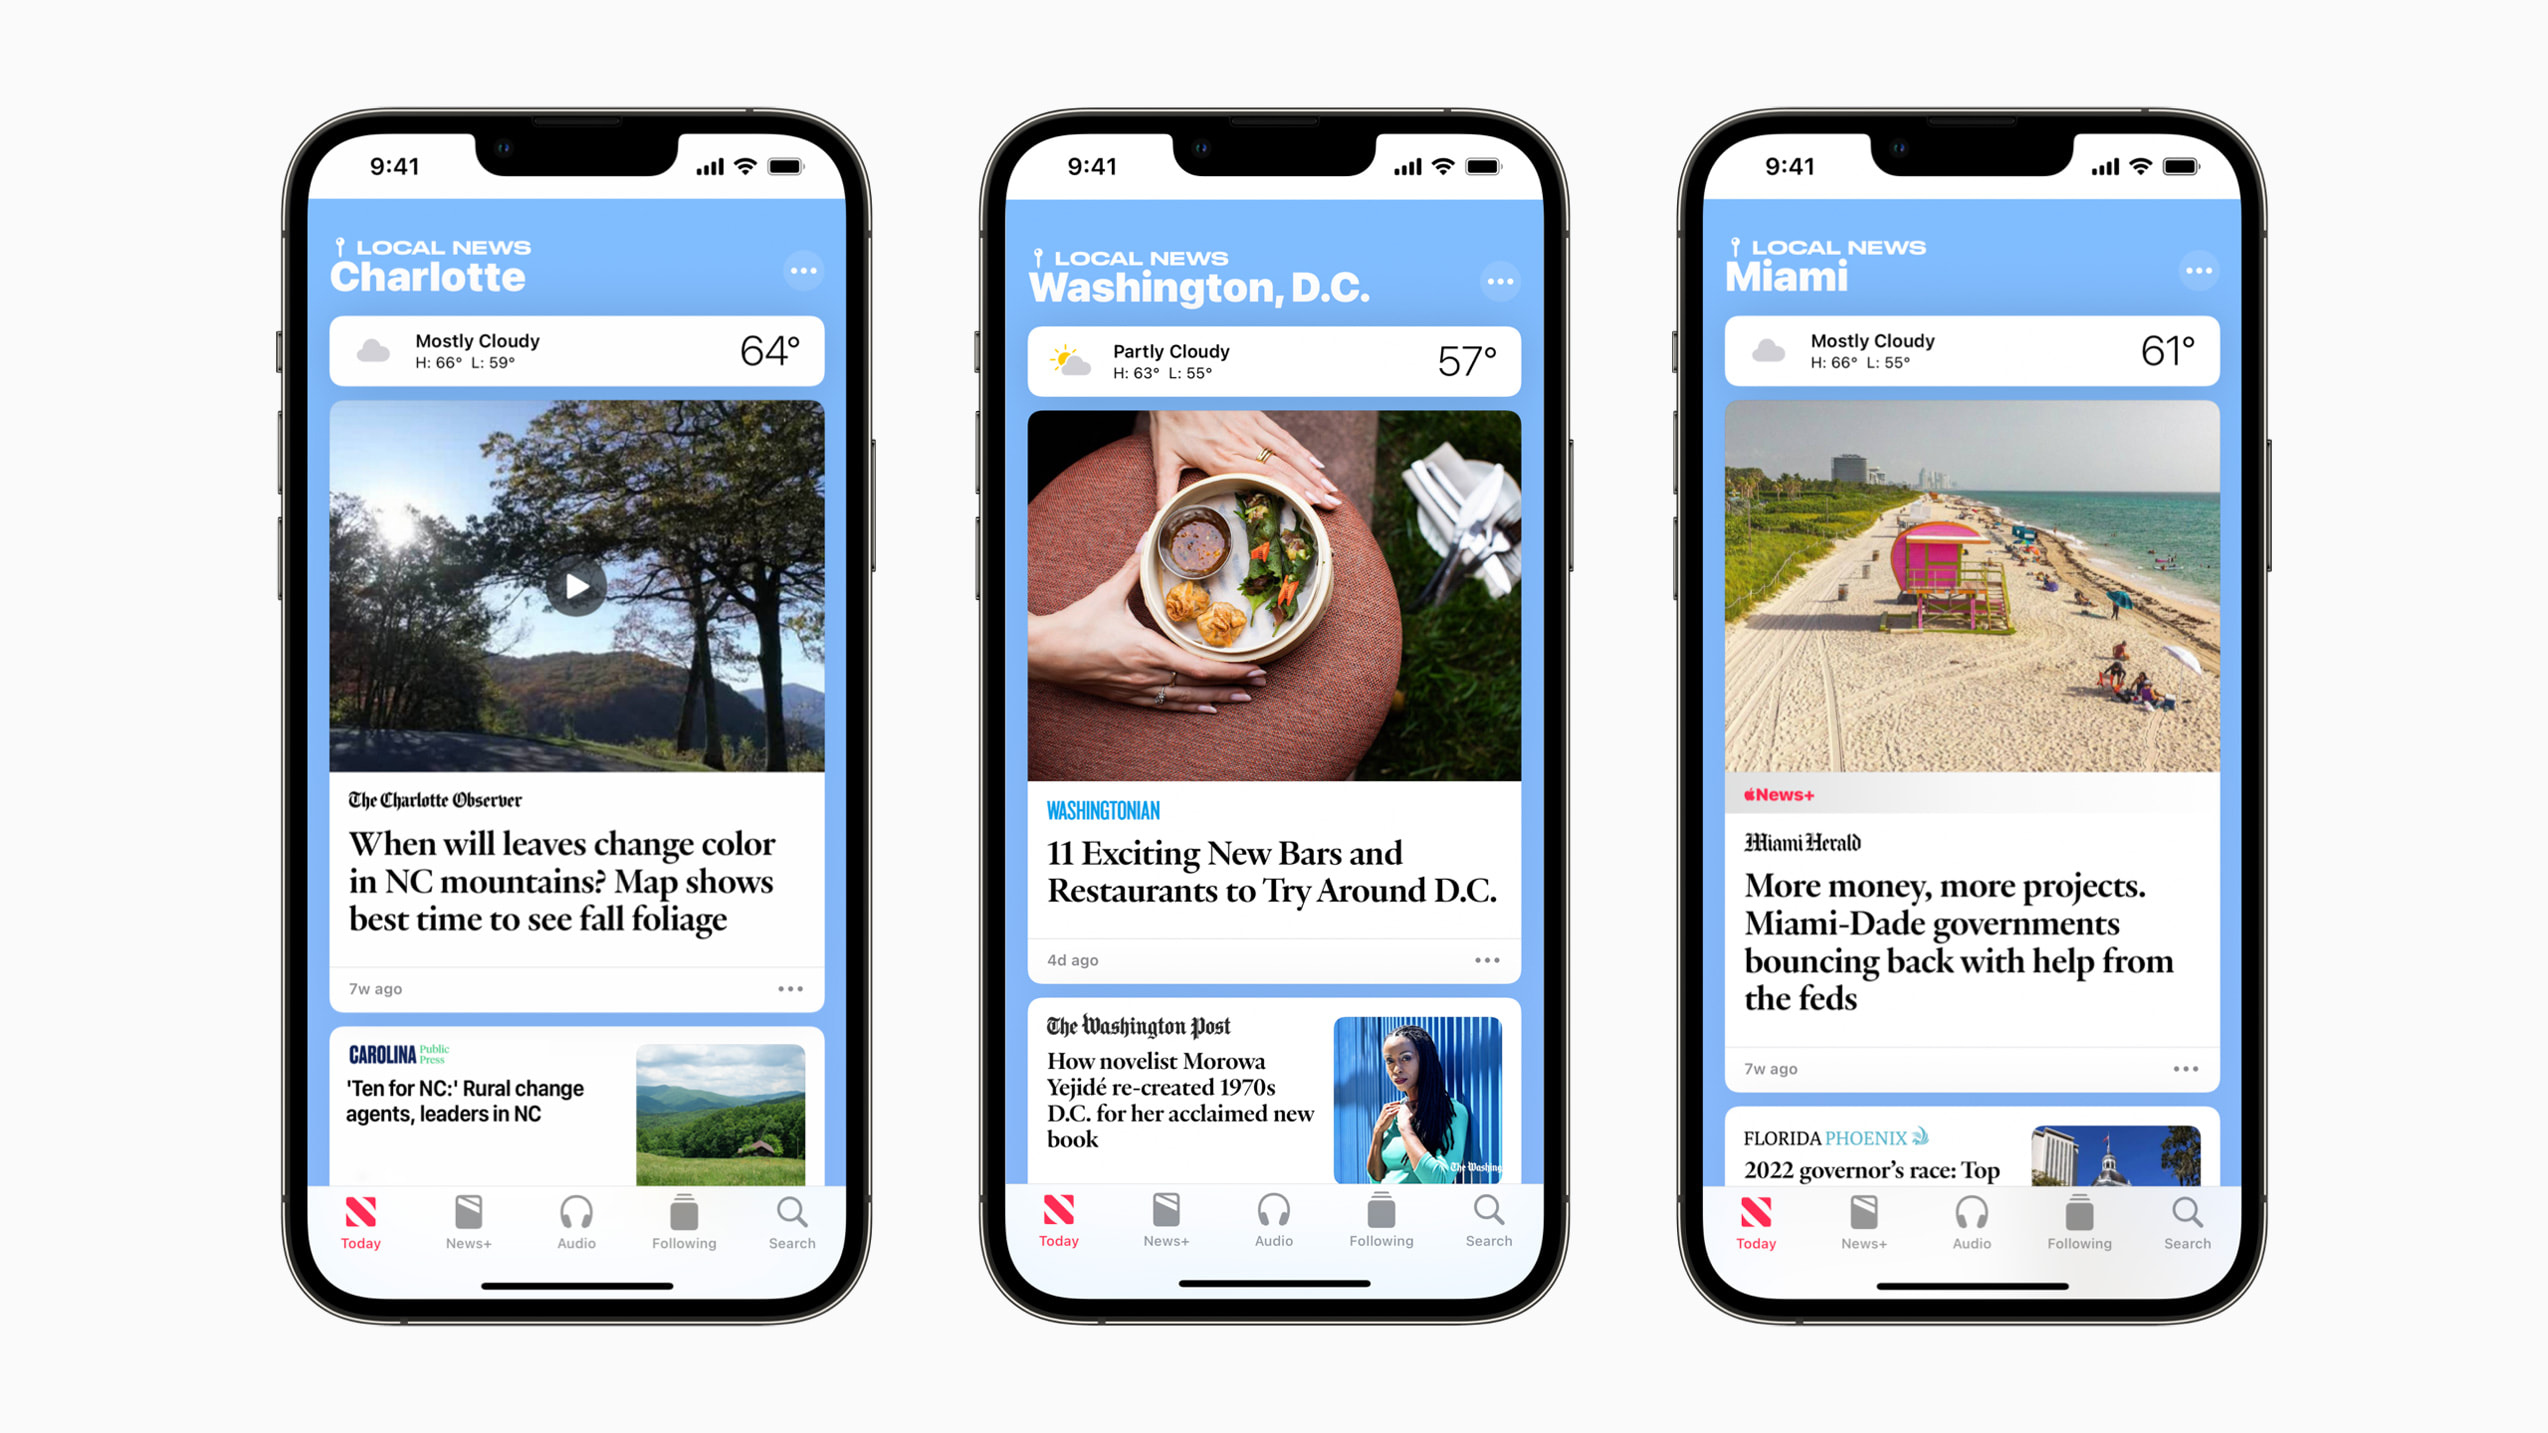 Apple News expands local news coverage to three new cities in the US